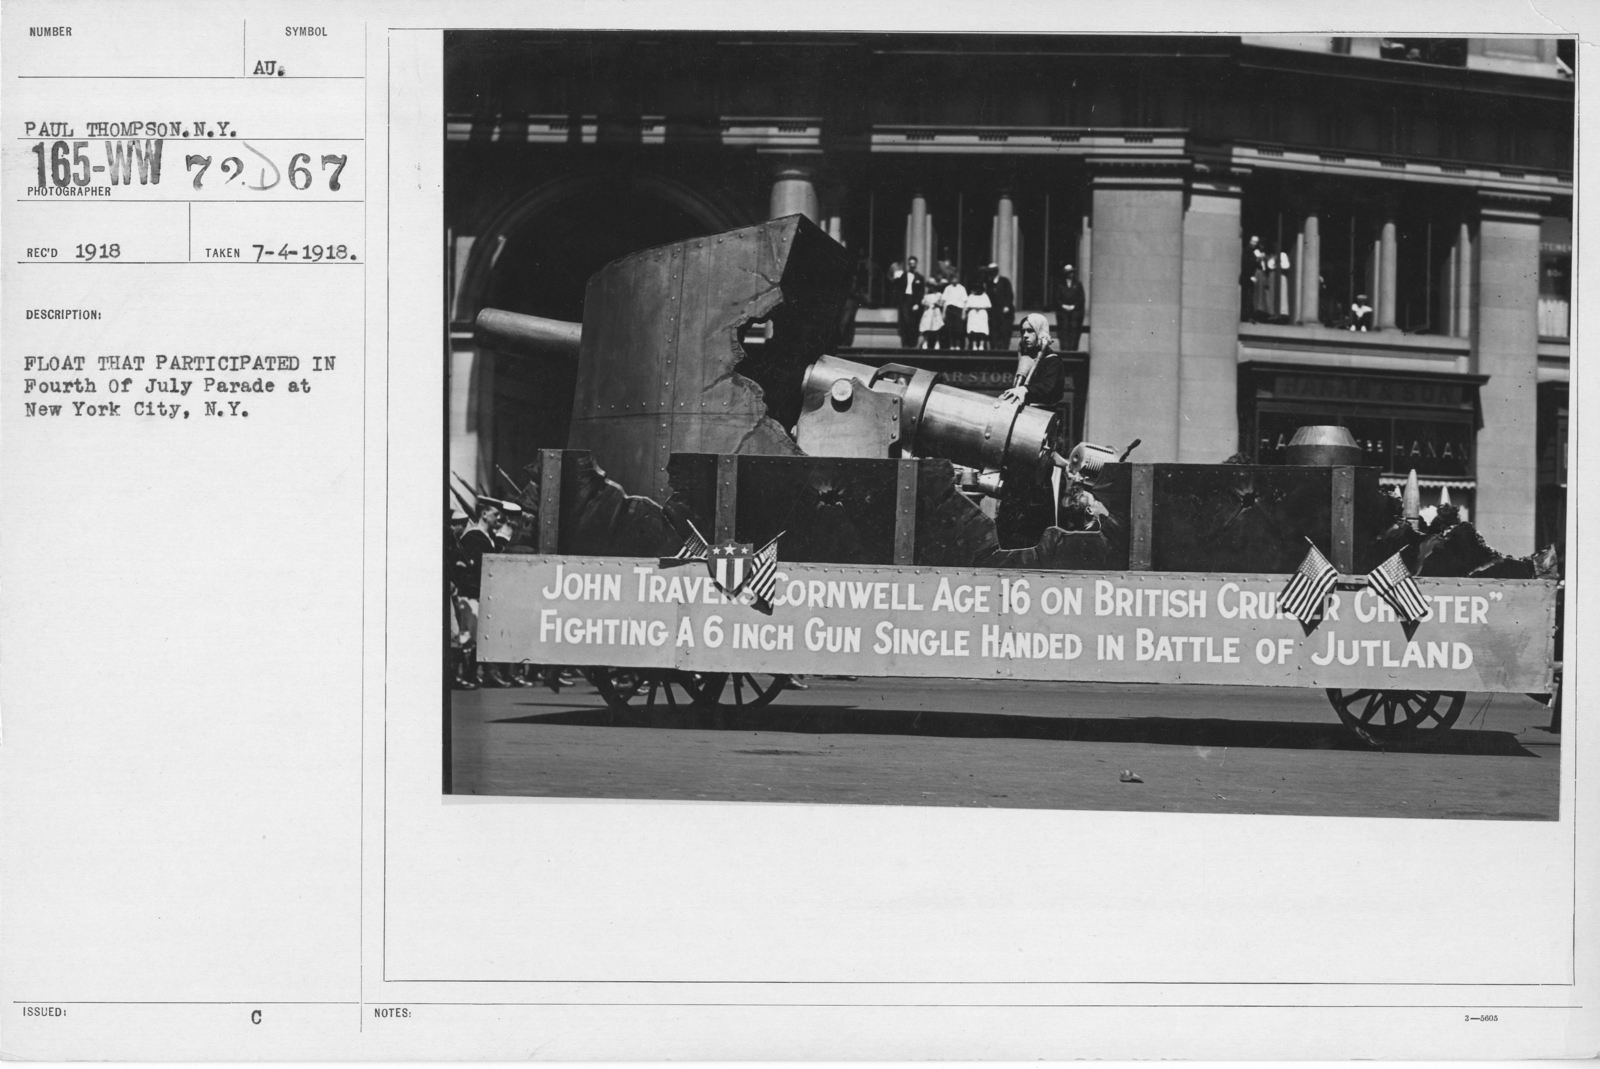 Ceremonies - Independence Day, 1918 - Float that participated in Fourth of July Parade at New York City, N.Y